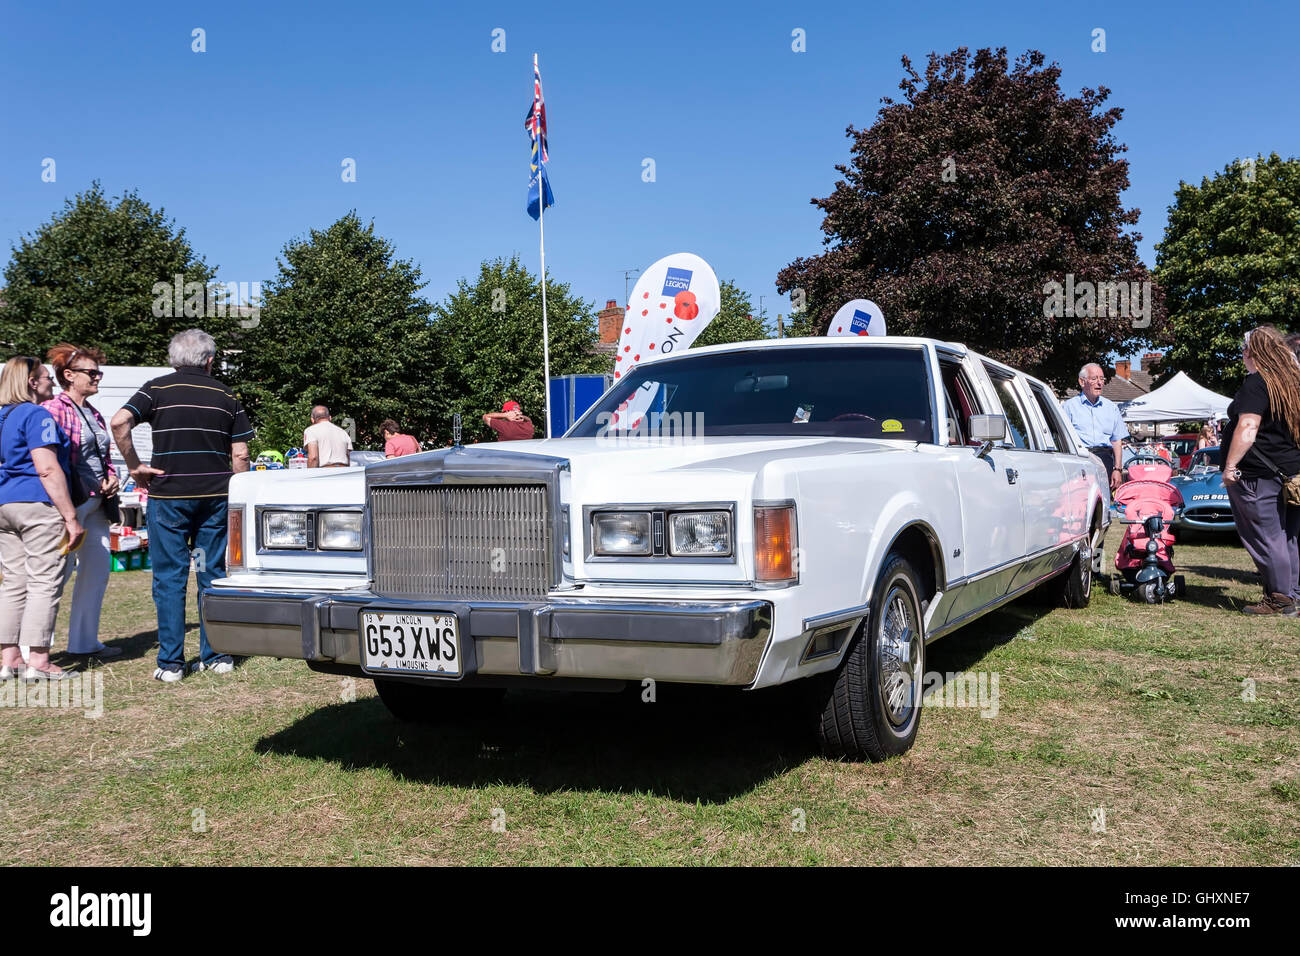 hight resolution of lincoln town car 1989 classic car show stock image